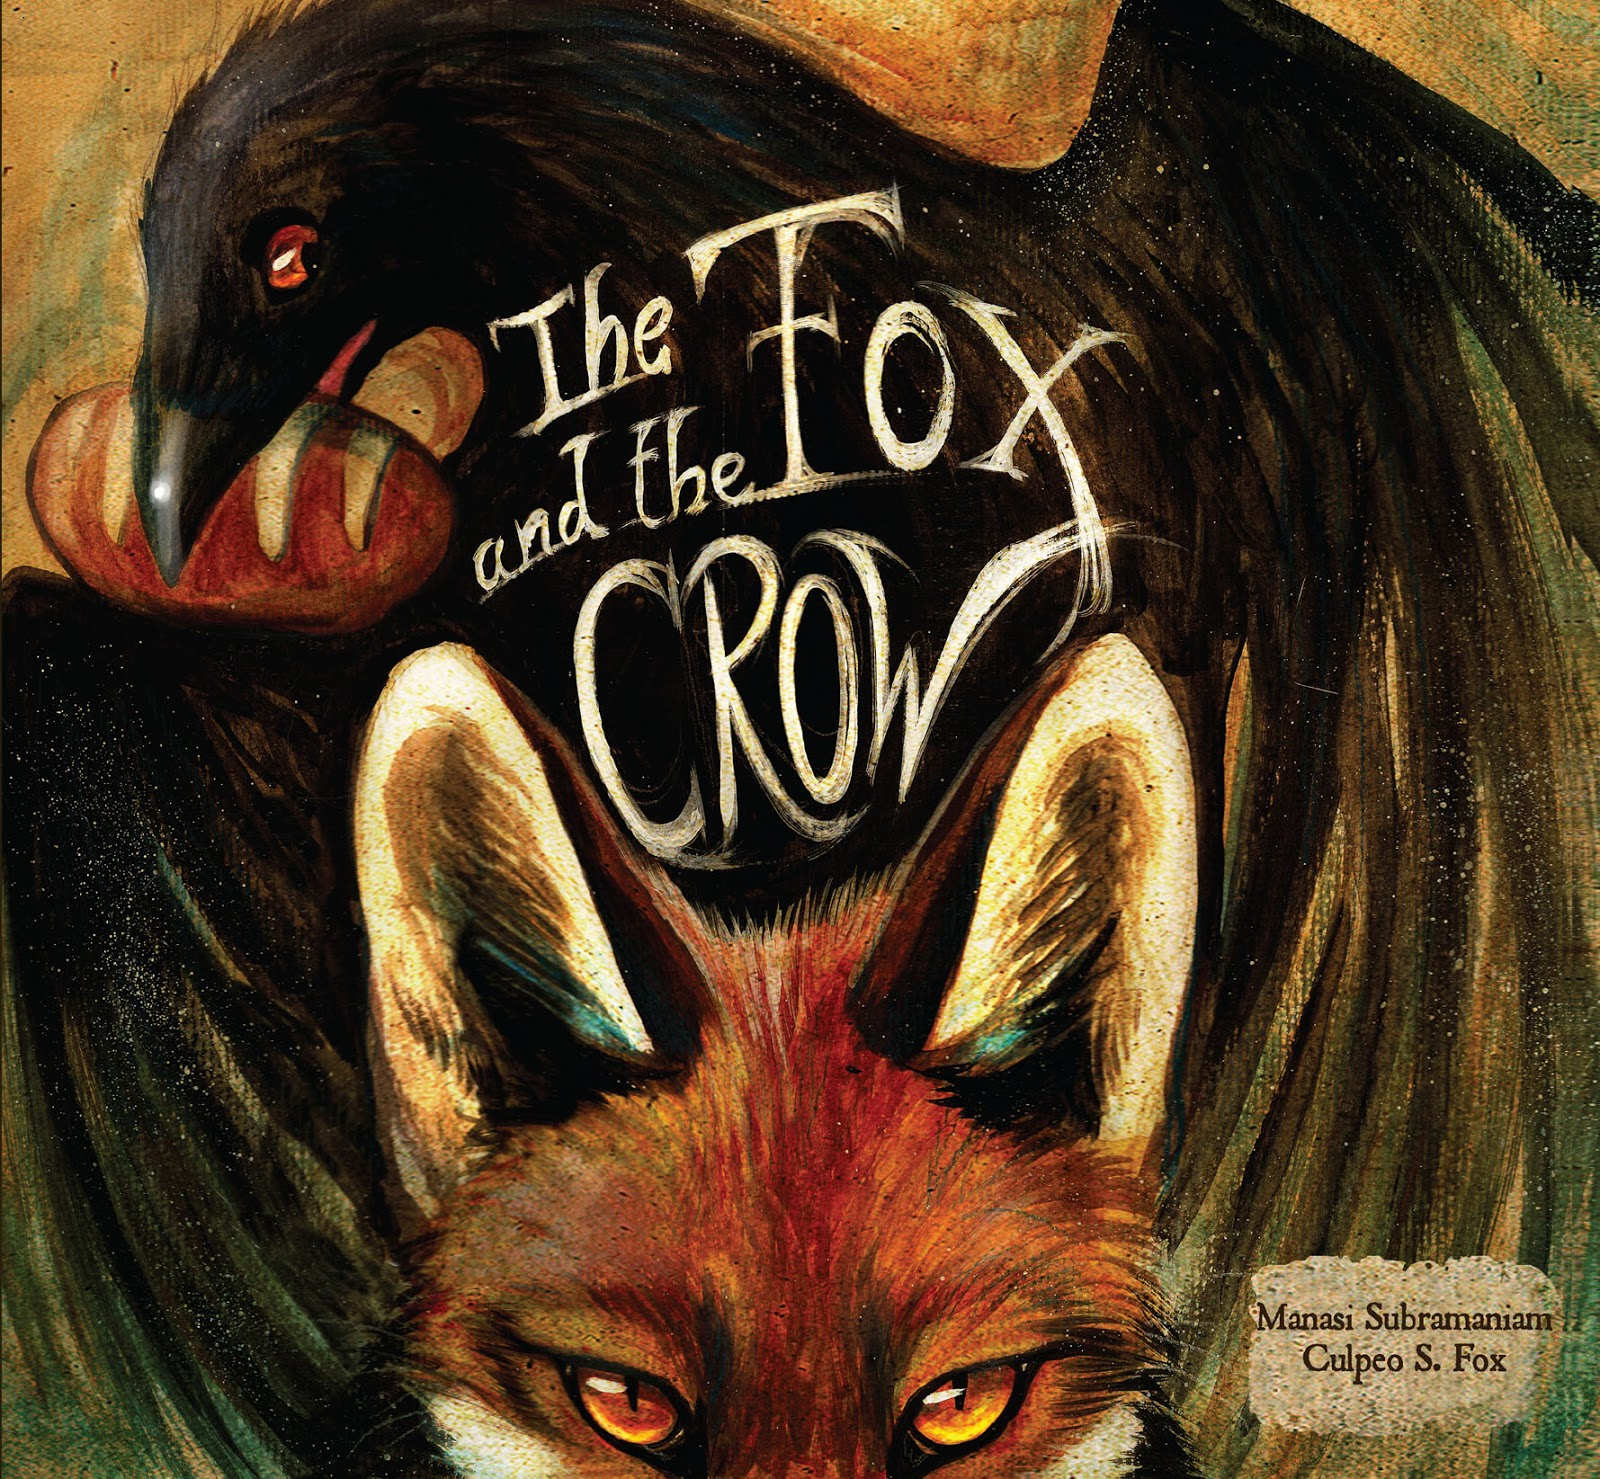 The fox and the crow is our book of the month and is available at 20 off till aug 31st at